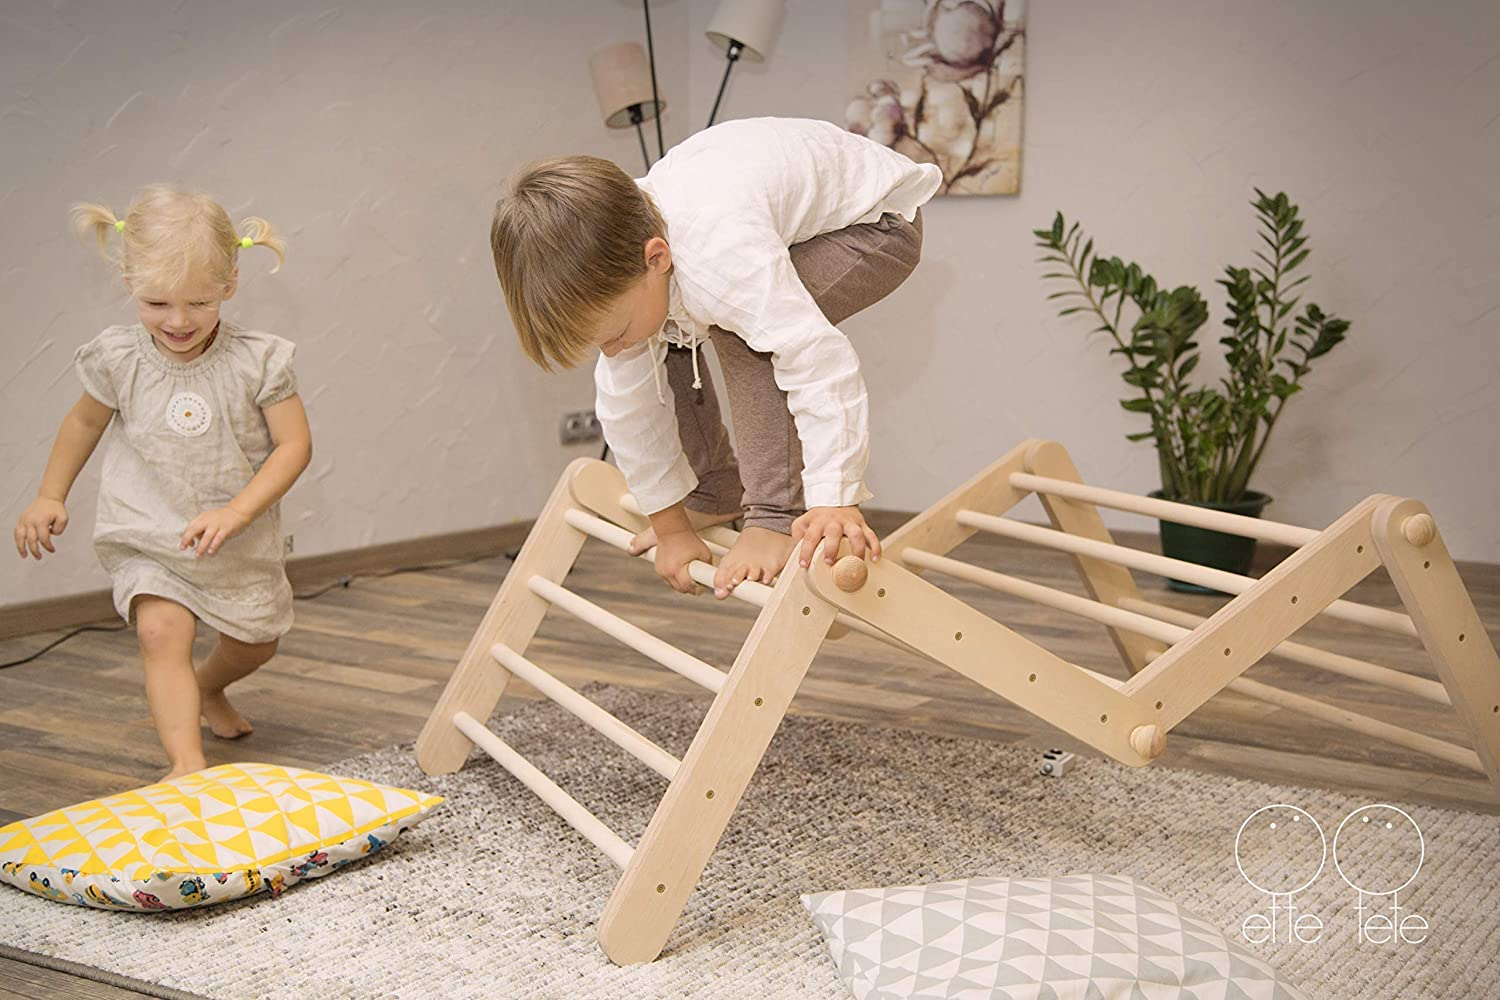 climbing structure Modifiable Pikler triangle Mopitri freestanding climber